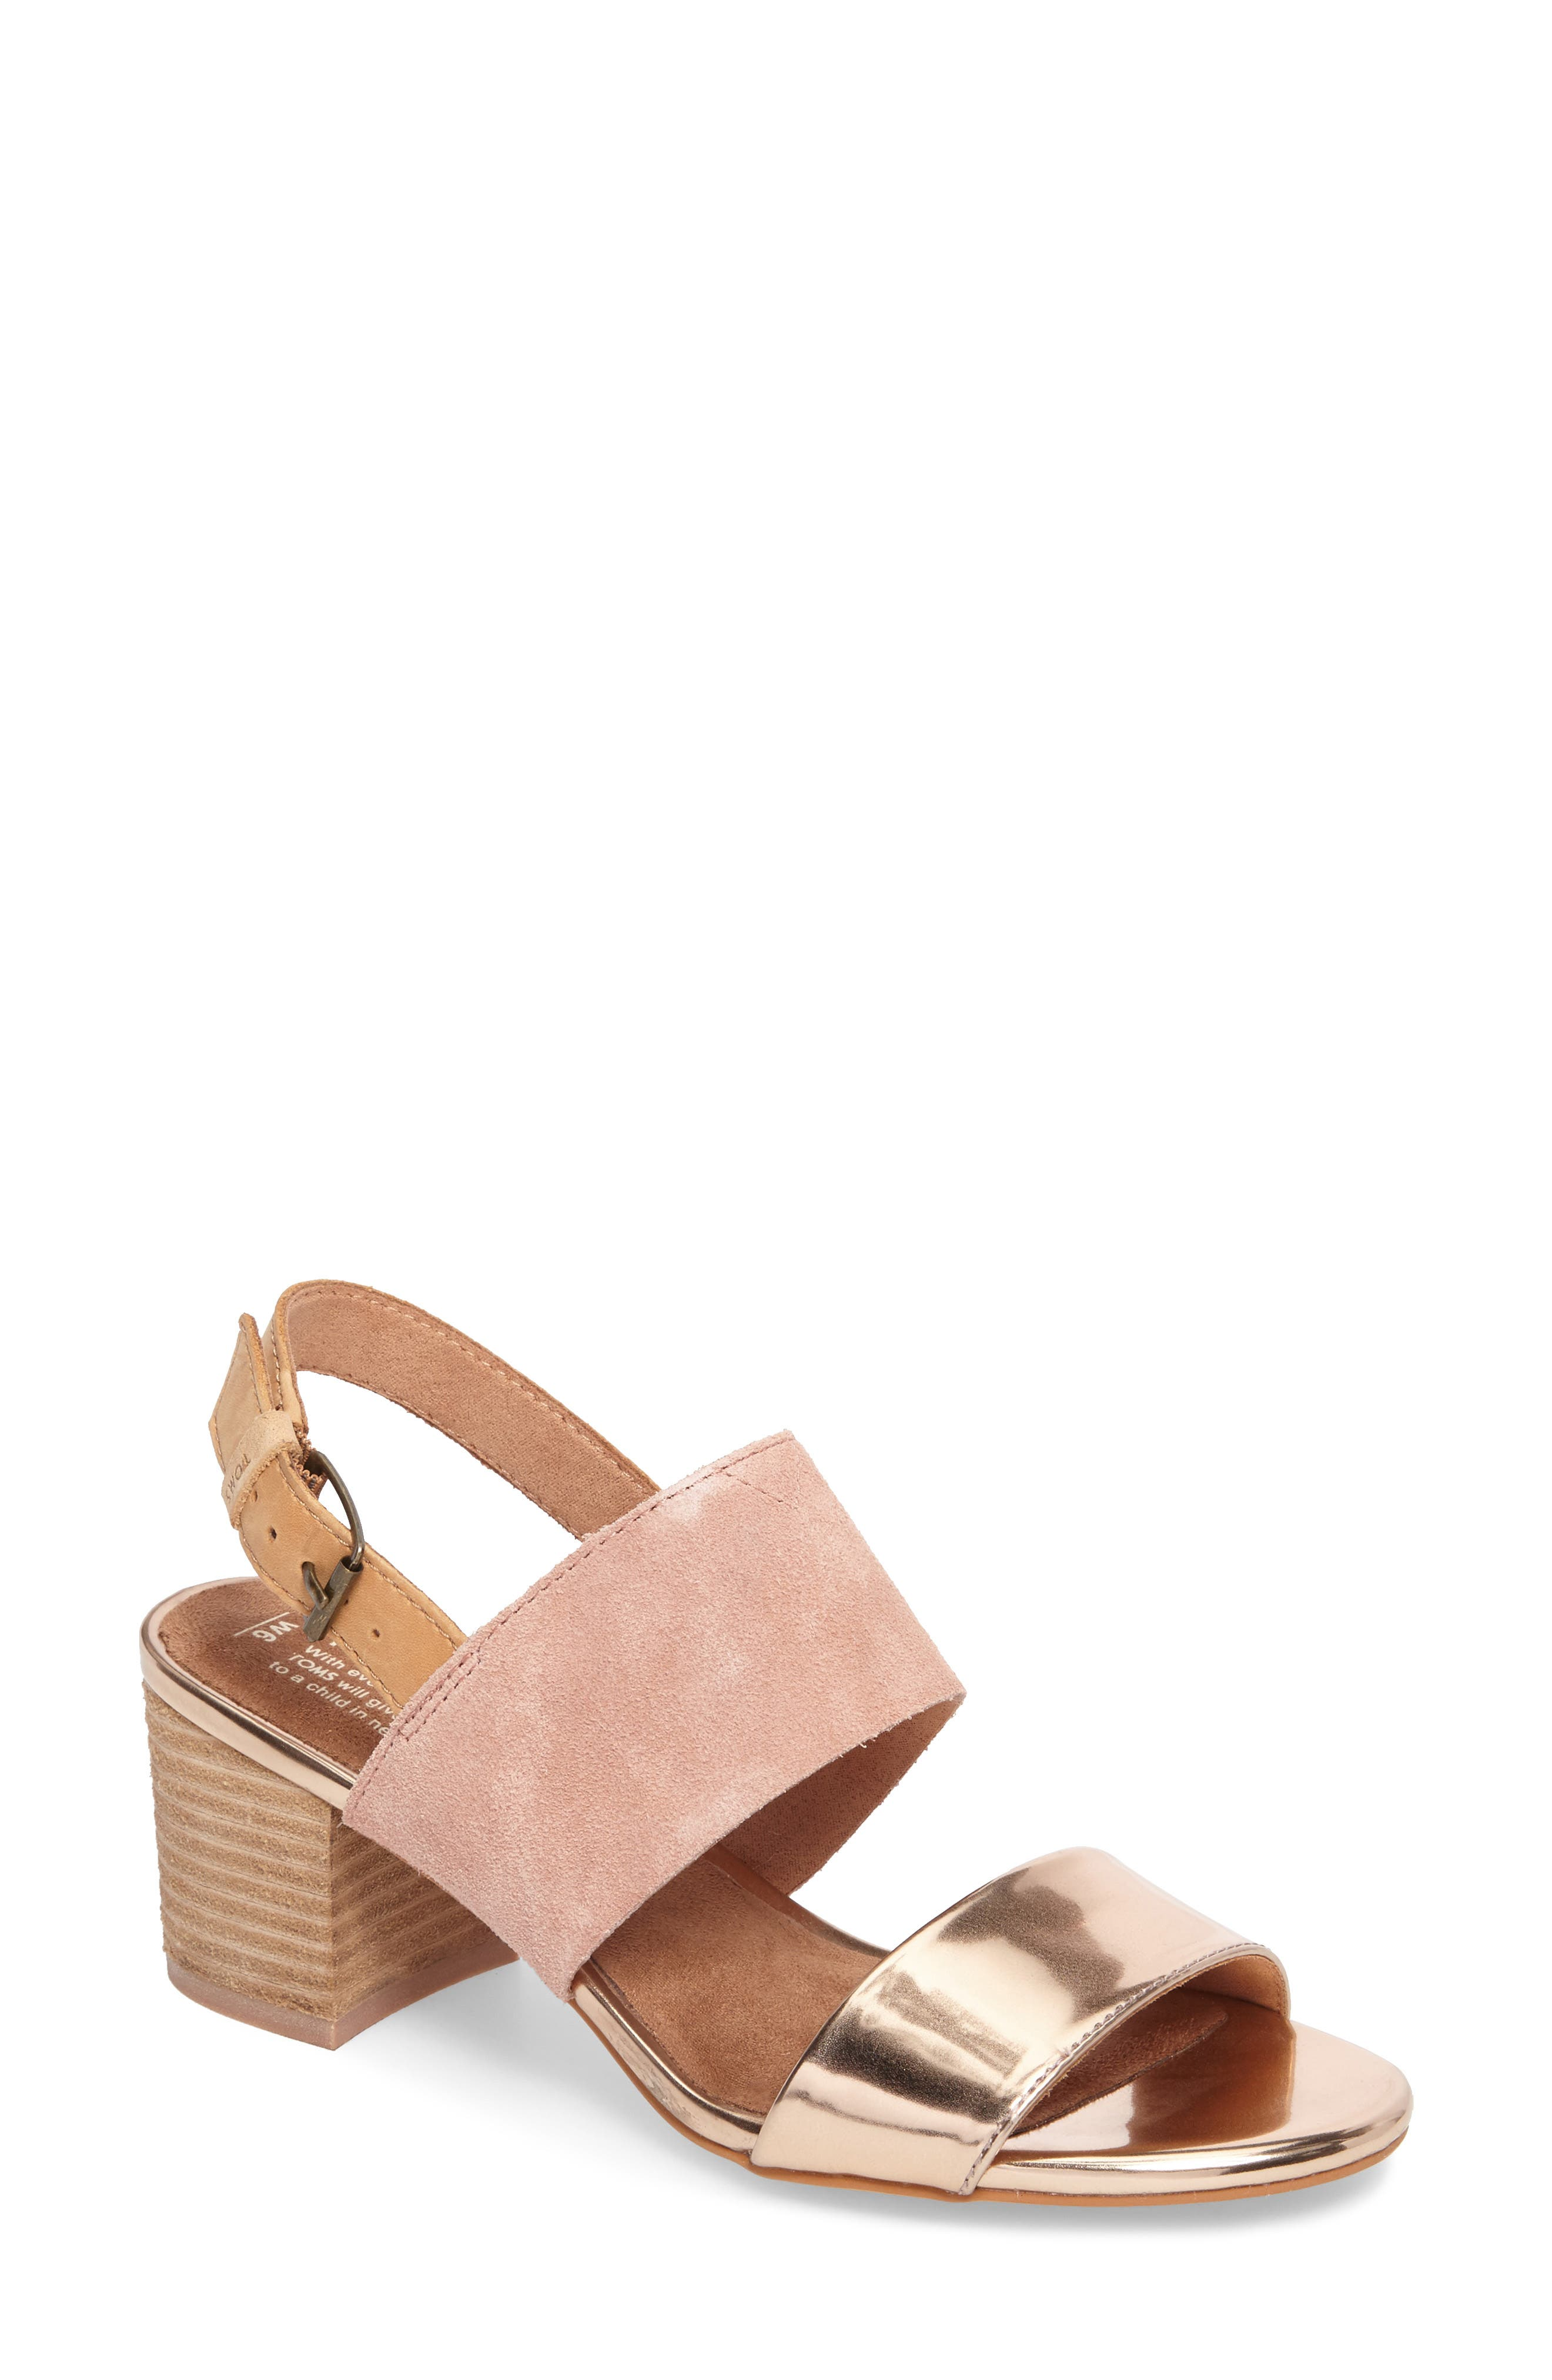 Poppy Sandal,                             Main thumbnail 1, color,                             Bloom / Rose Gold Suede